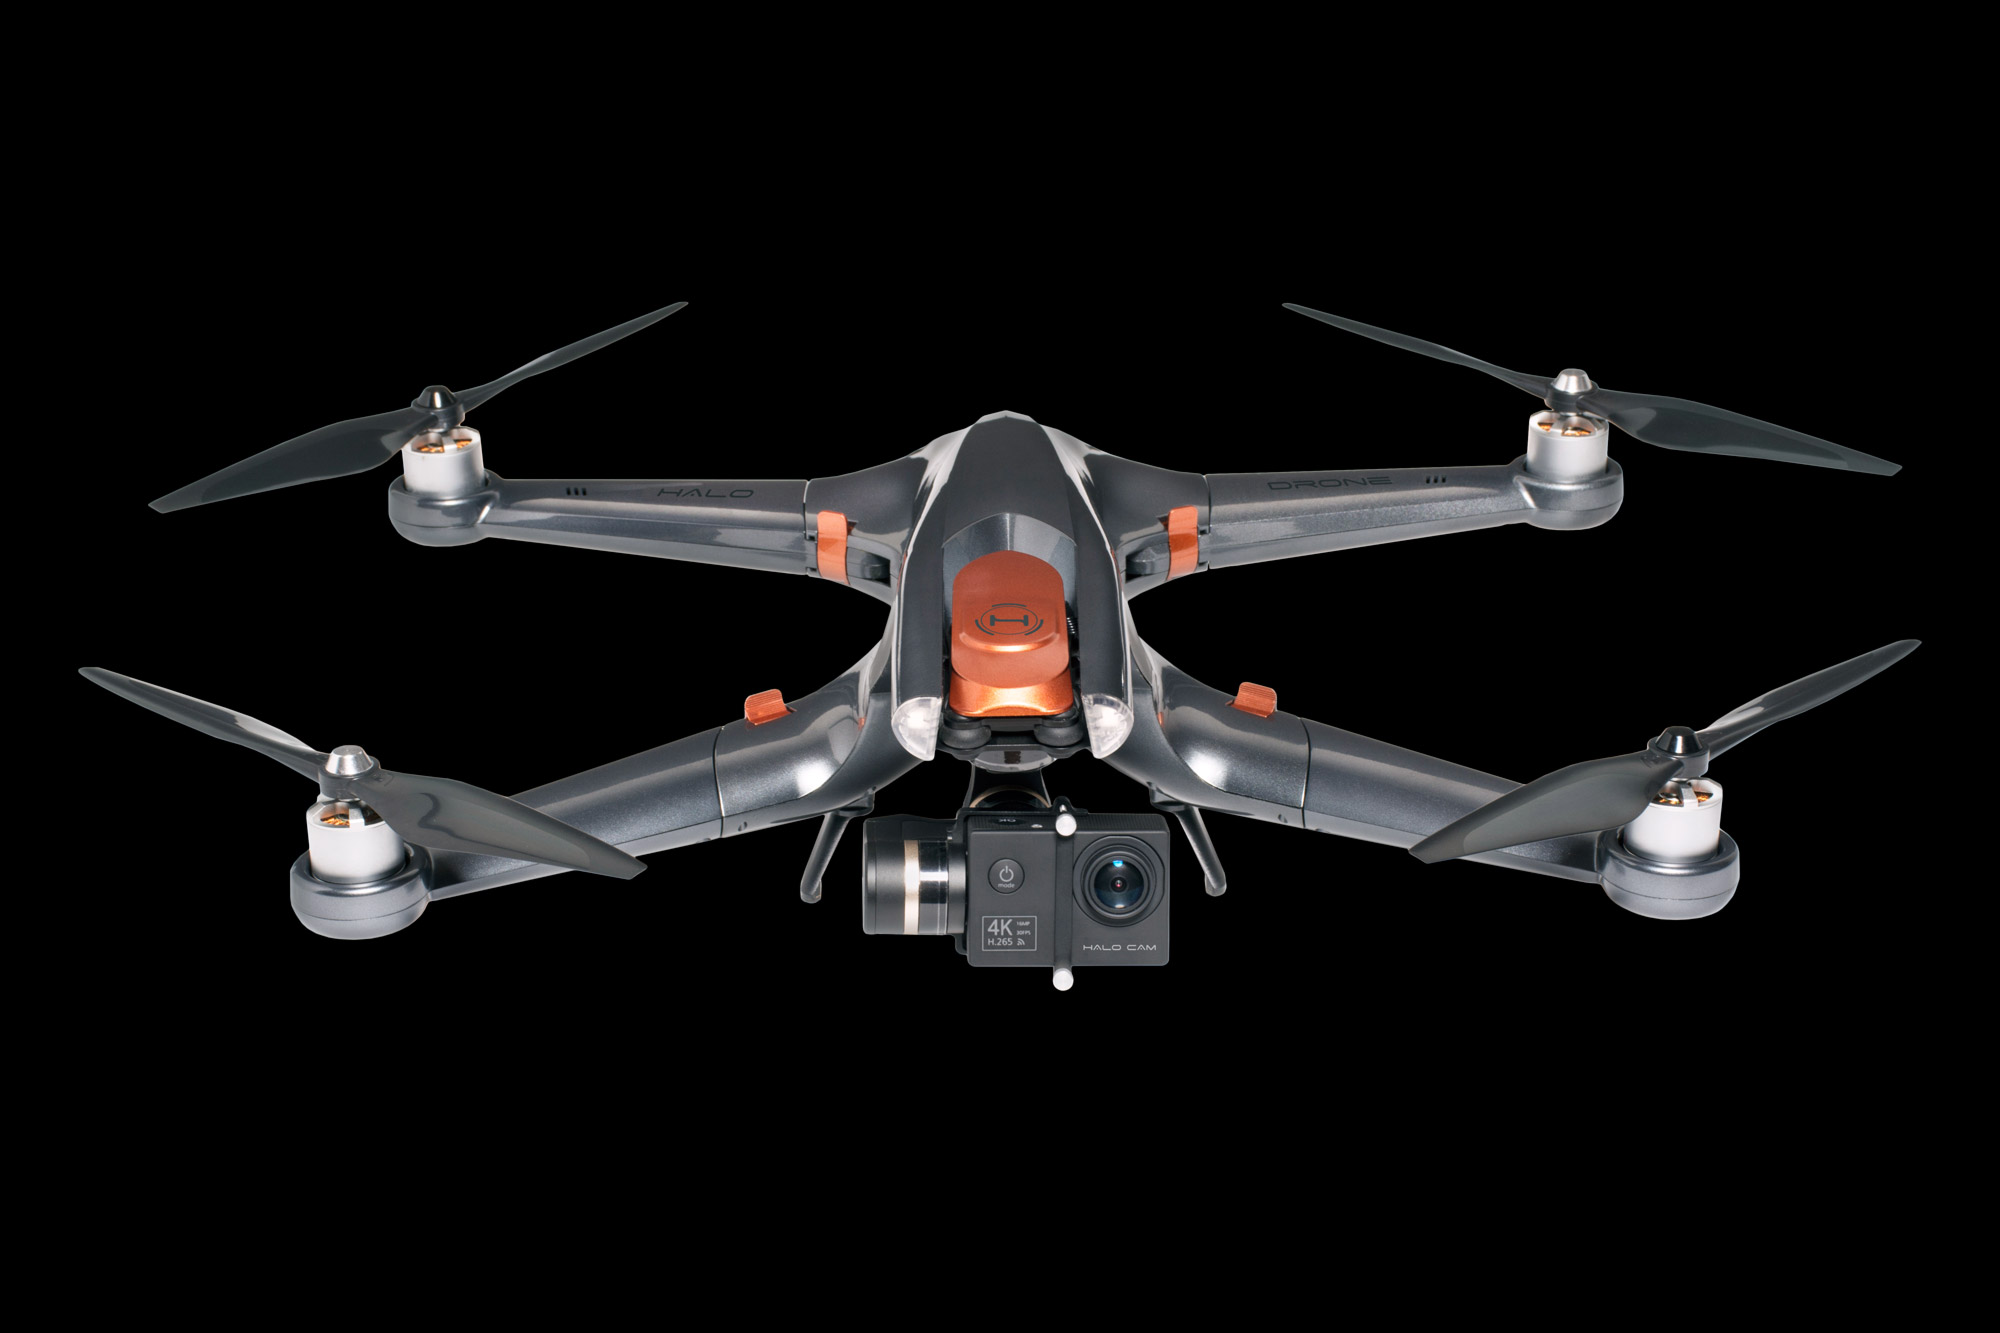 Press Release And First Look Halo Drone The Best Drone